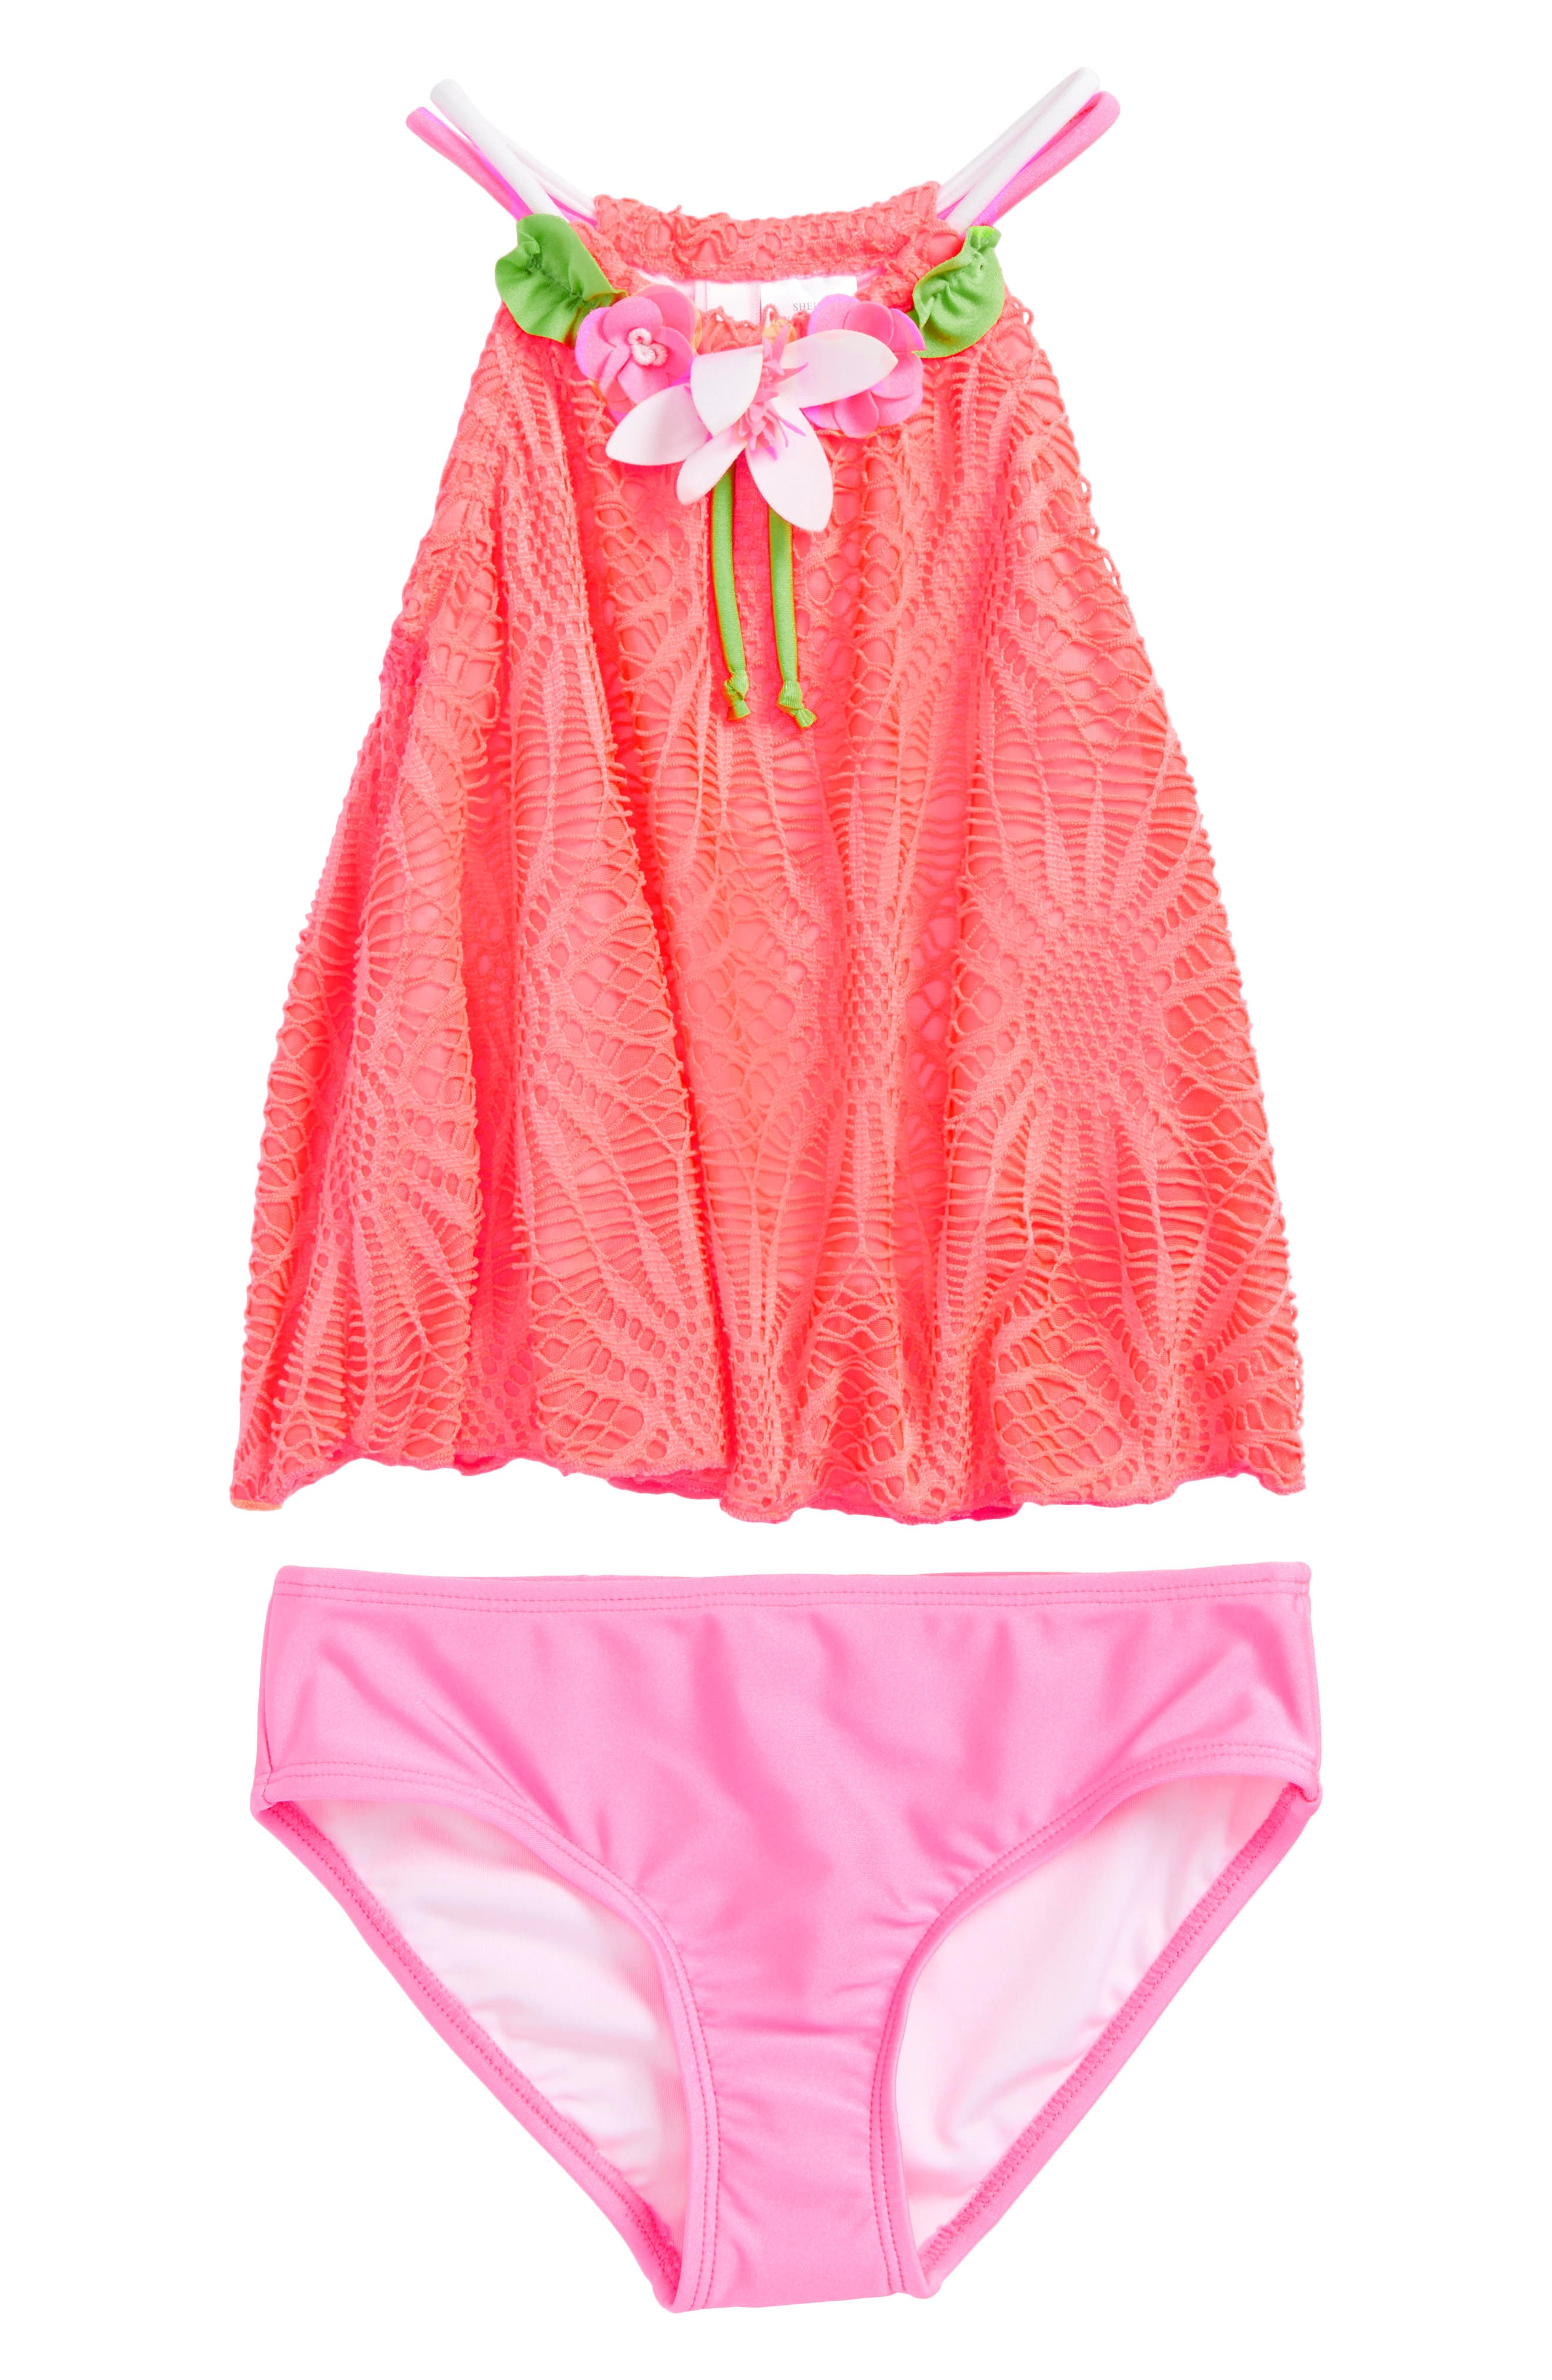 Crochet Tankini Two-Piece Swimsuit,                         Main,                         color, Coral Pink